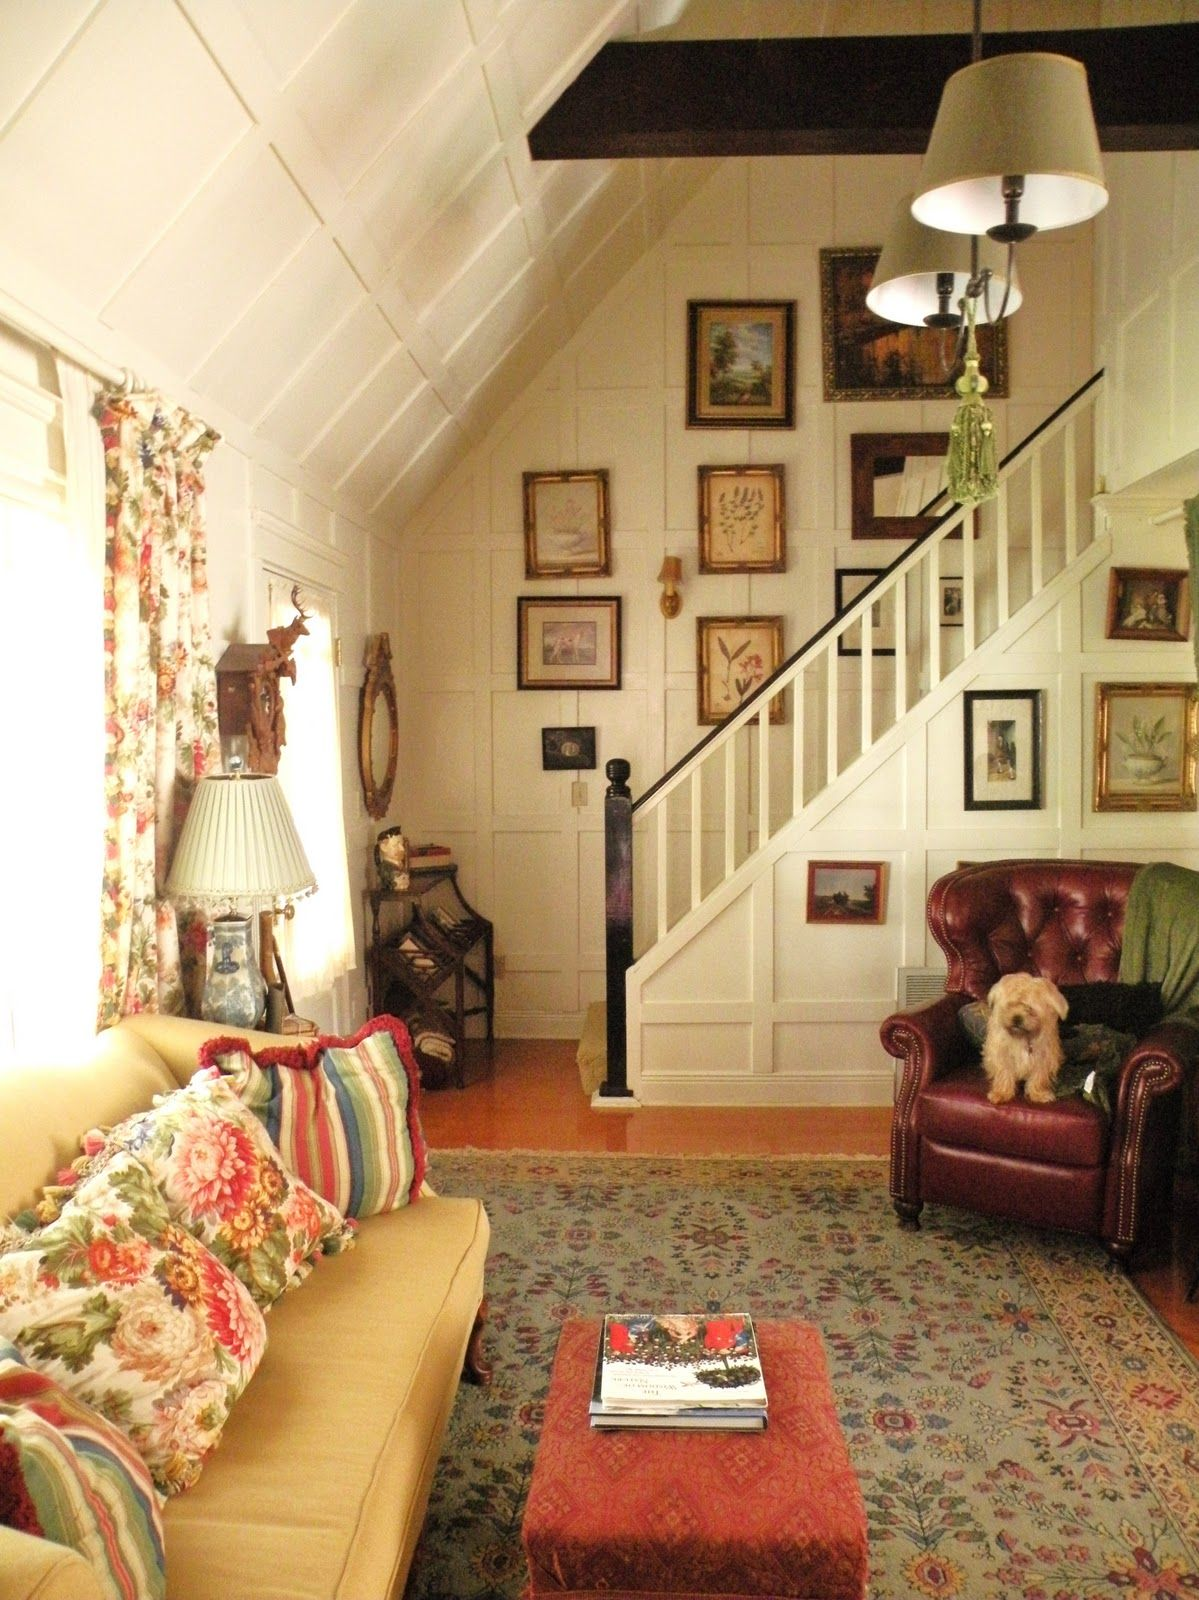 For Older Homes With Funky Angles This Is A Cool Take On Ceiling Treatments Cottage Living Rooms Cottage Interiors Cottage Living